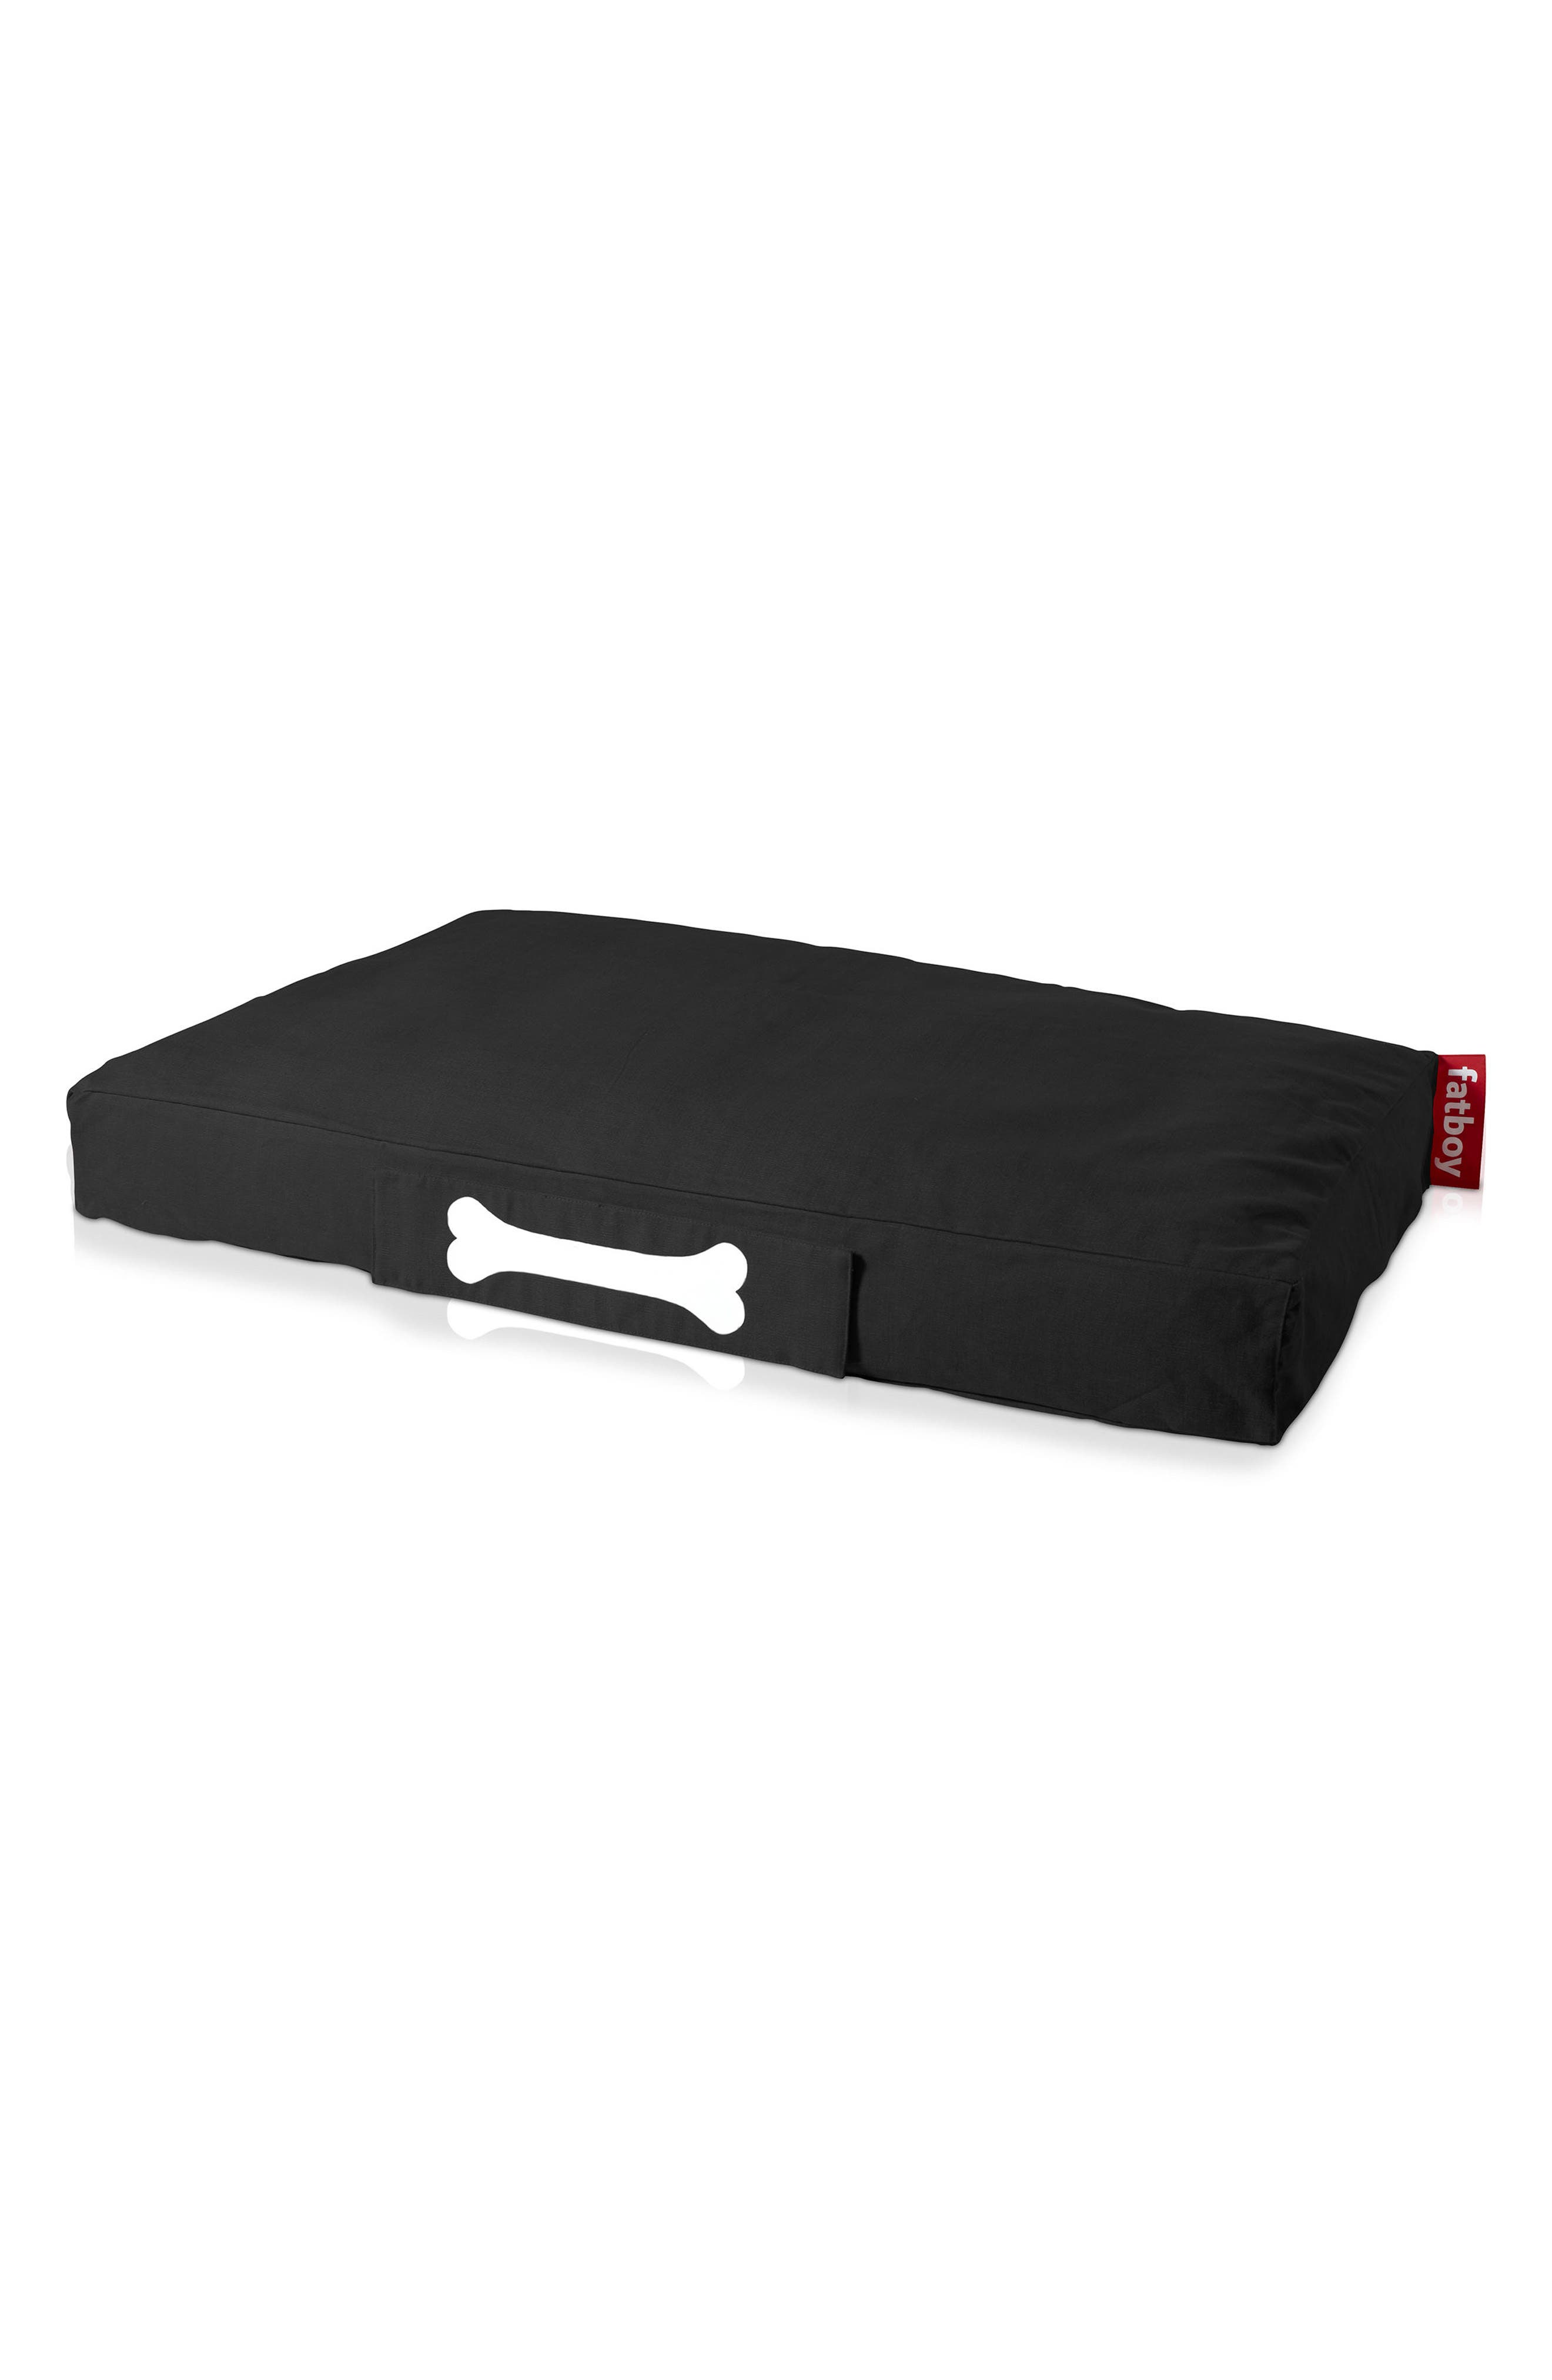 Doggielounge - Stonewashed Pet Bed,                             Main thumbnail 1, color,                             003